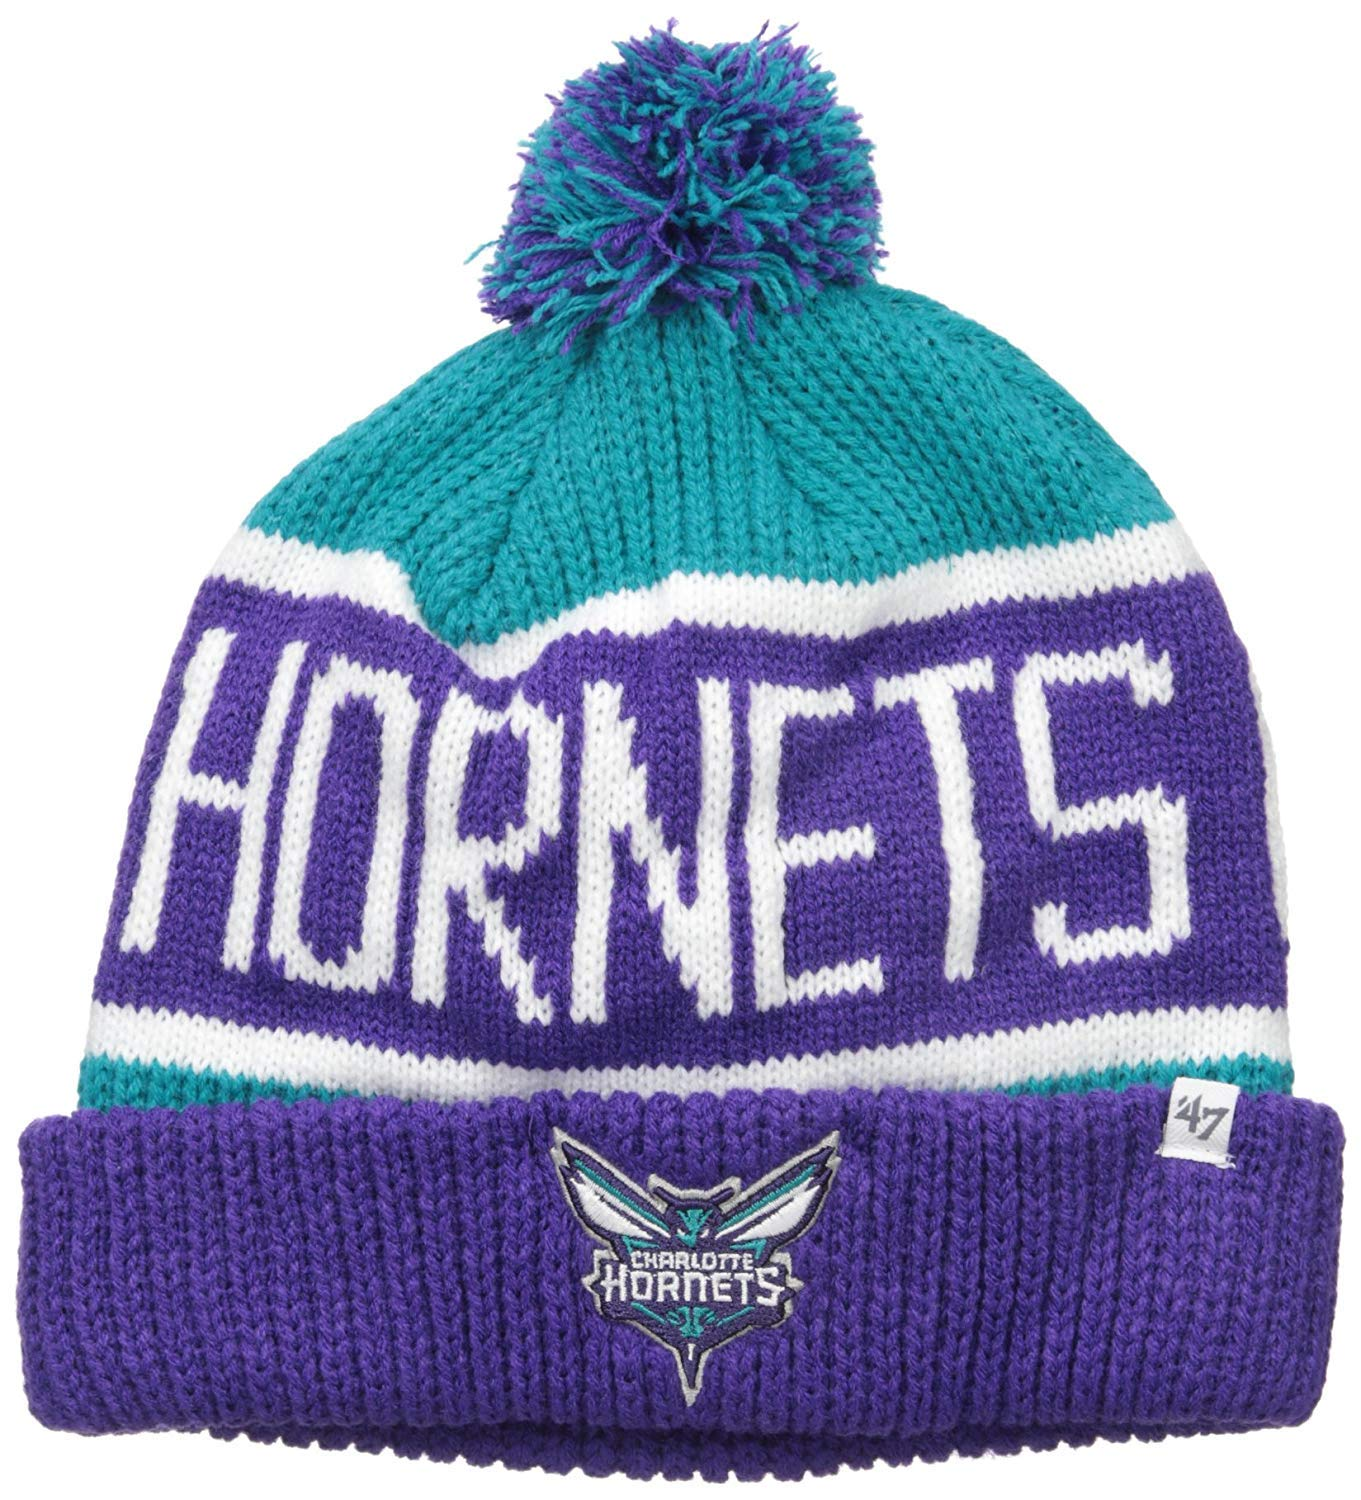 '47 Charlotte Hornets Vintage Calgary Beanie Hat with Pom - NBA Cuffed Winter Knit Toque Cap